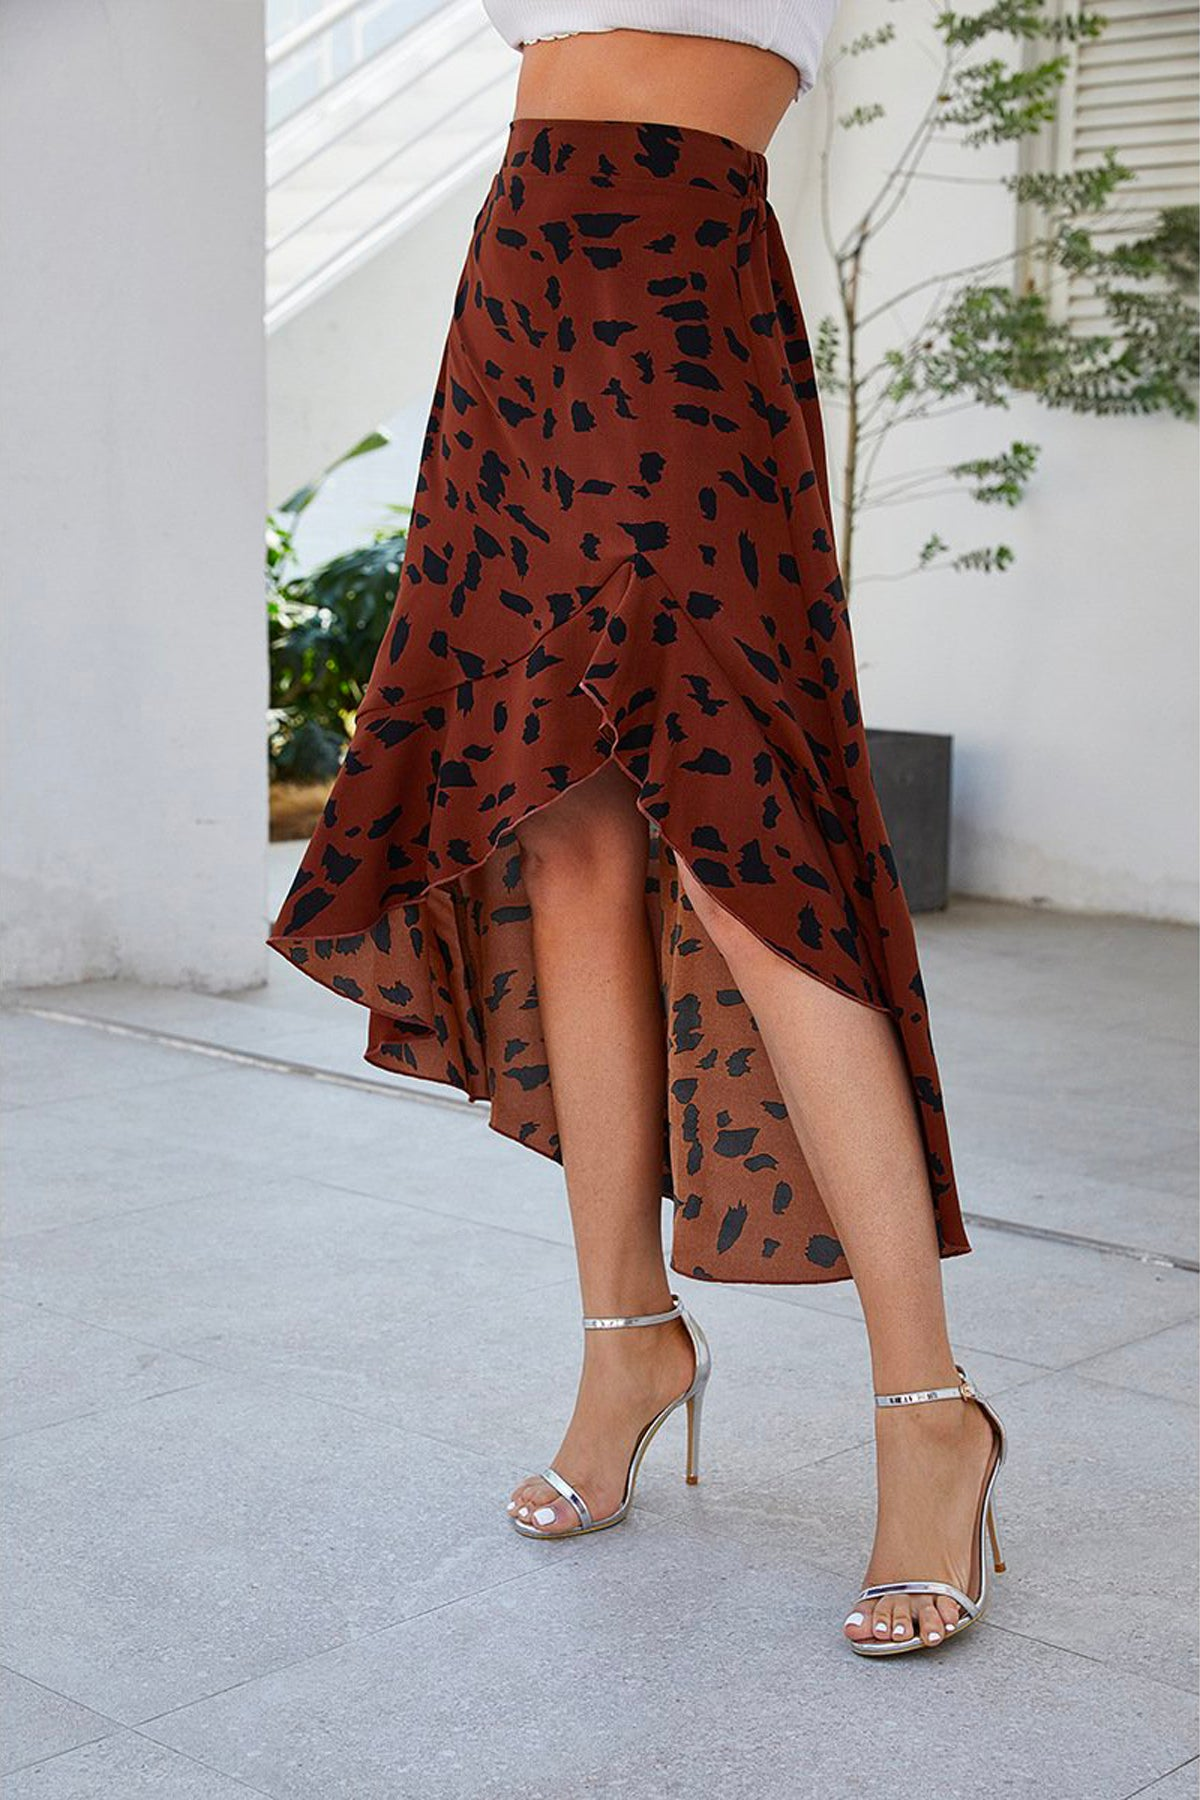 Fray High Waist Leopard Ruffle Skirt Brown - Fashion Movements skirts